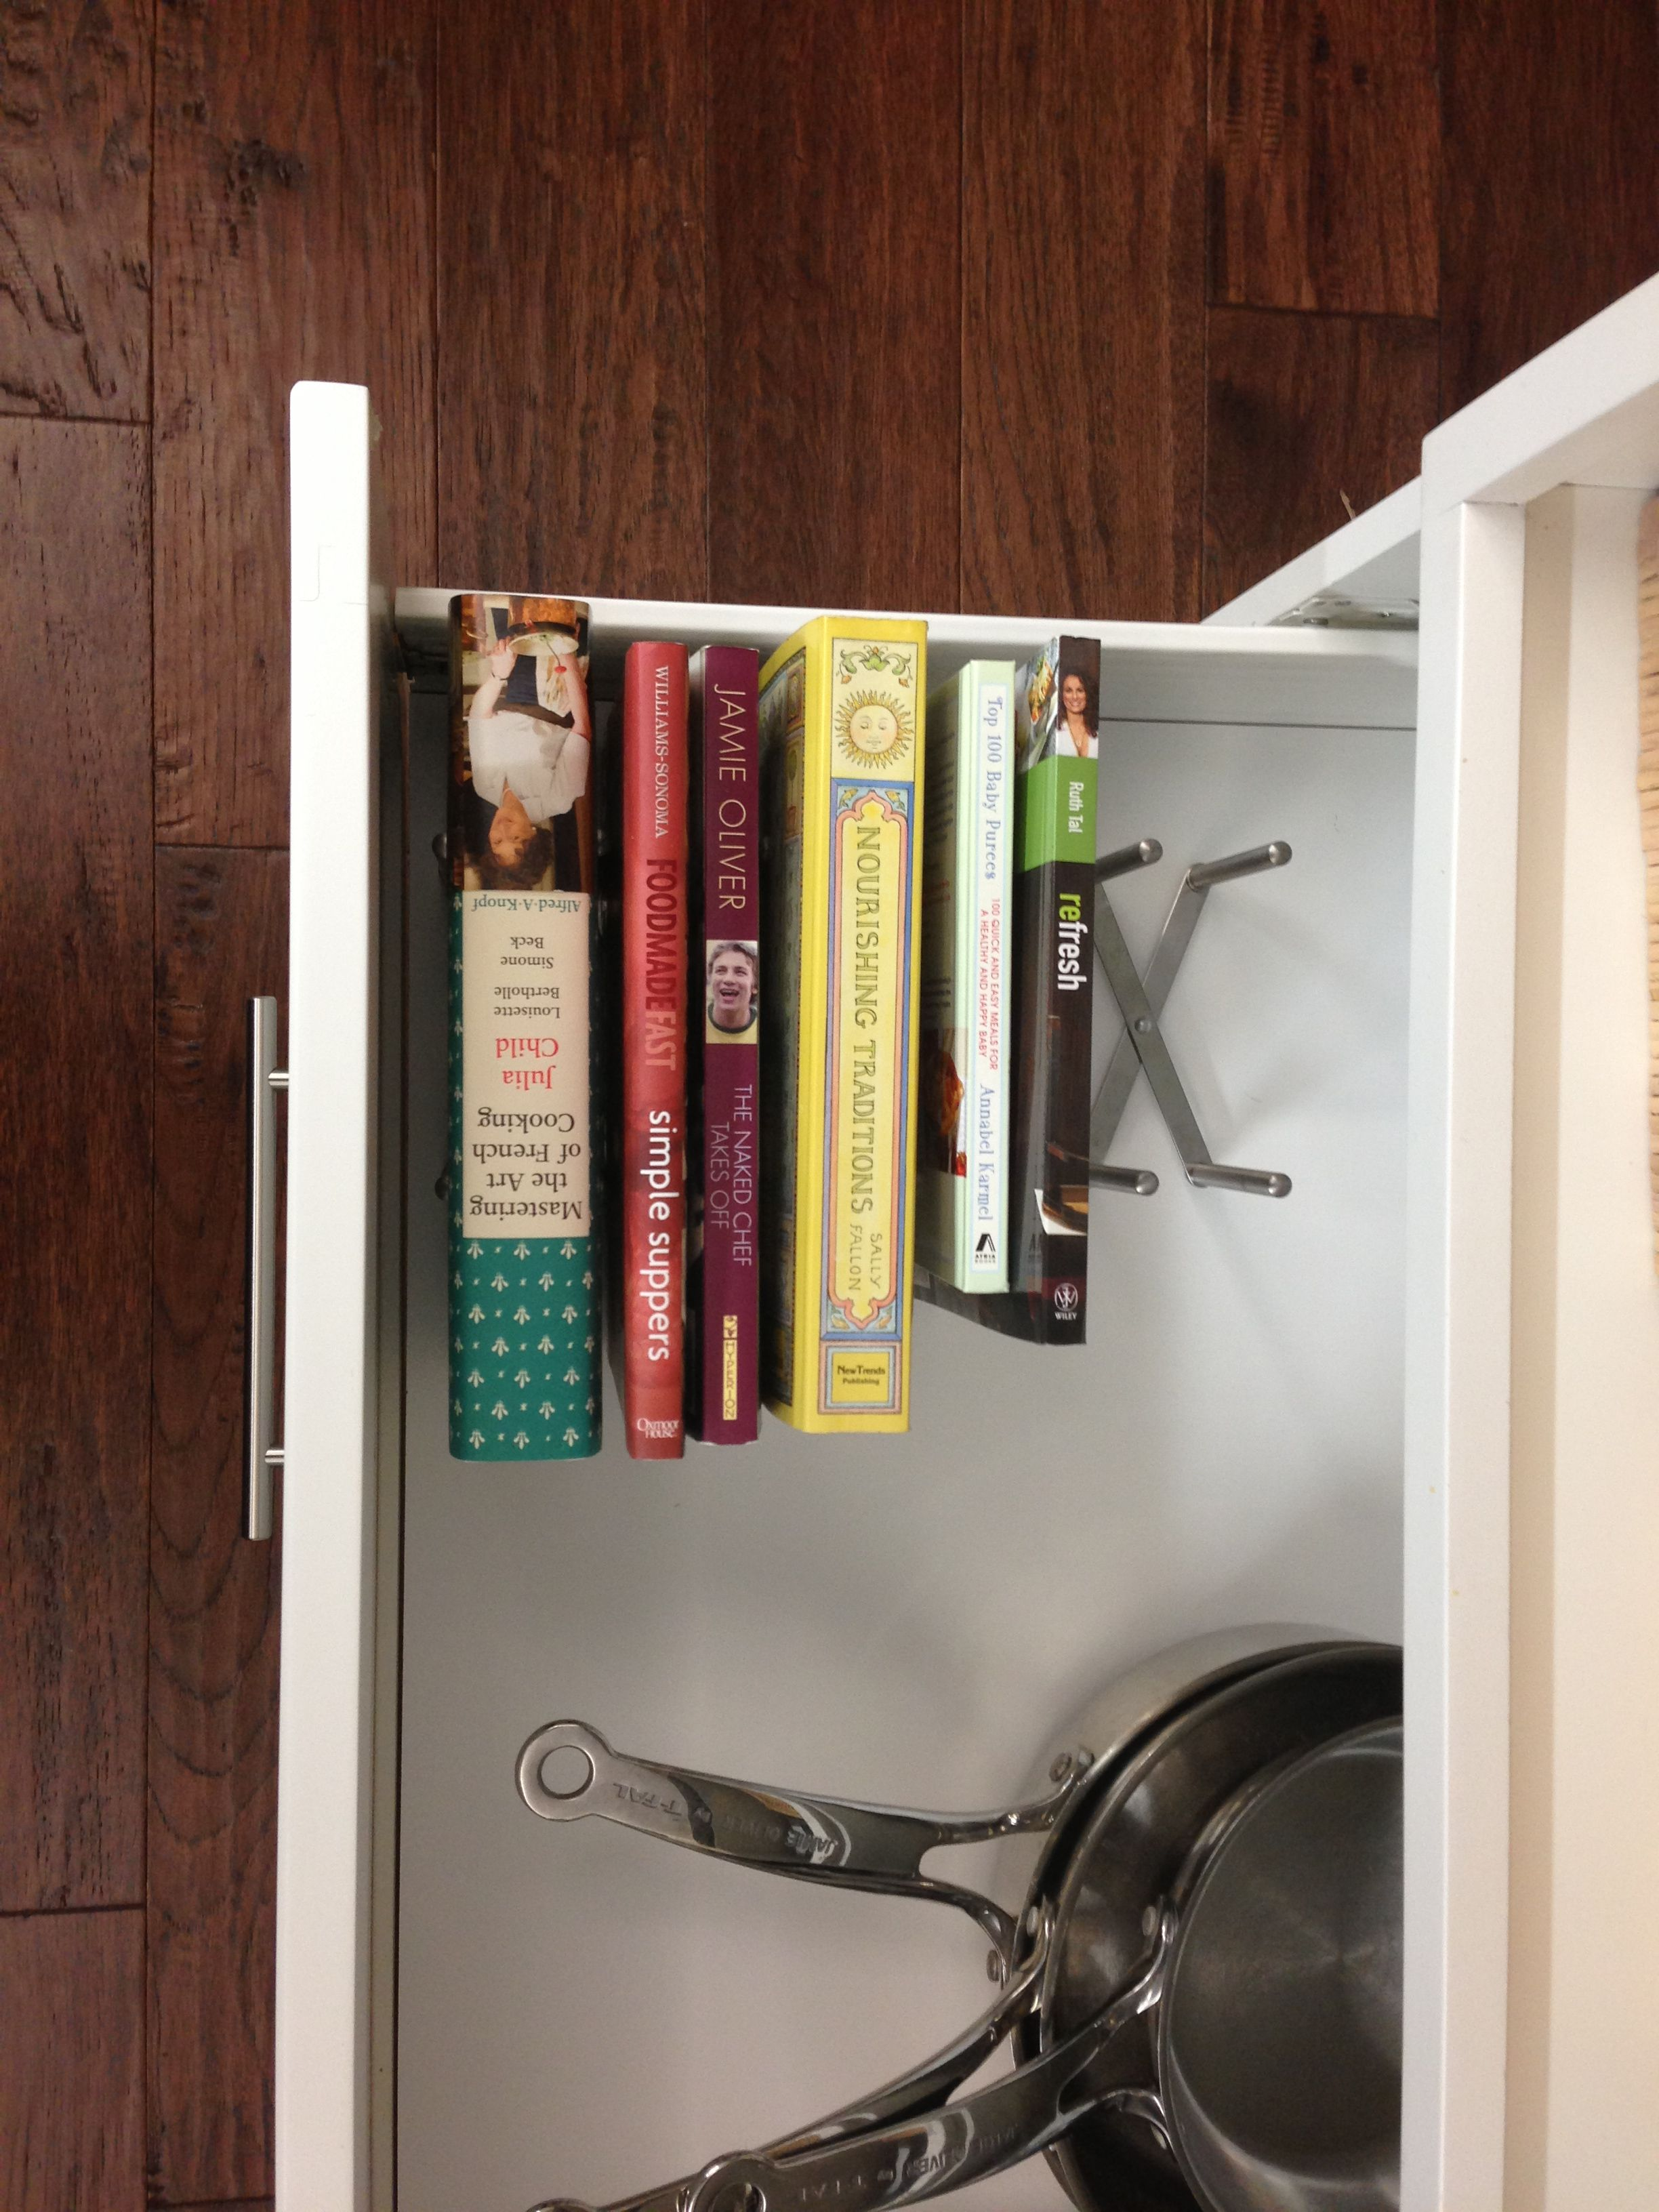 Cookbooks in a pots and pans drawer using an ikea VARIERA pot kid